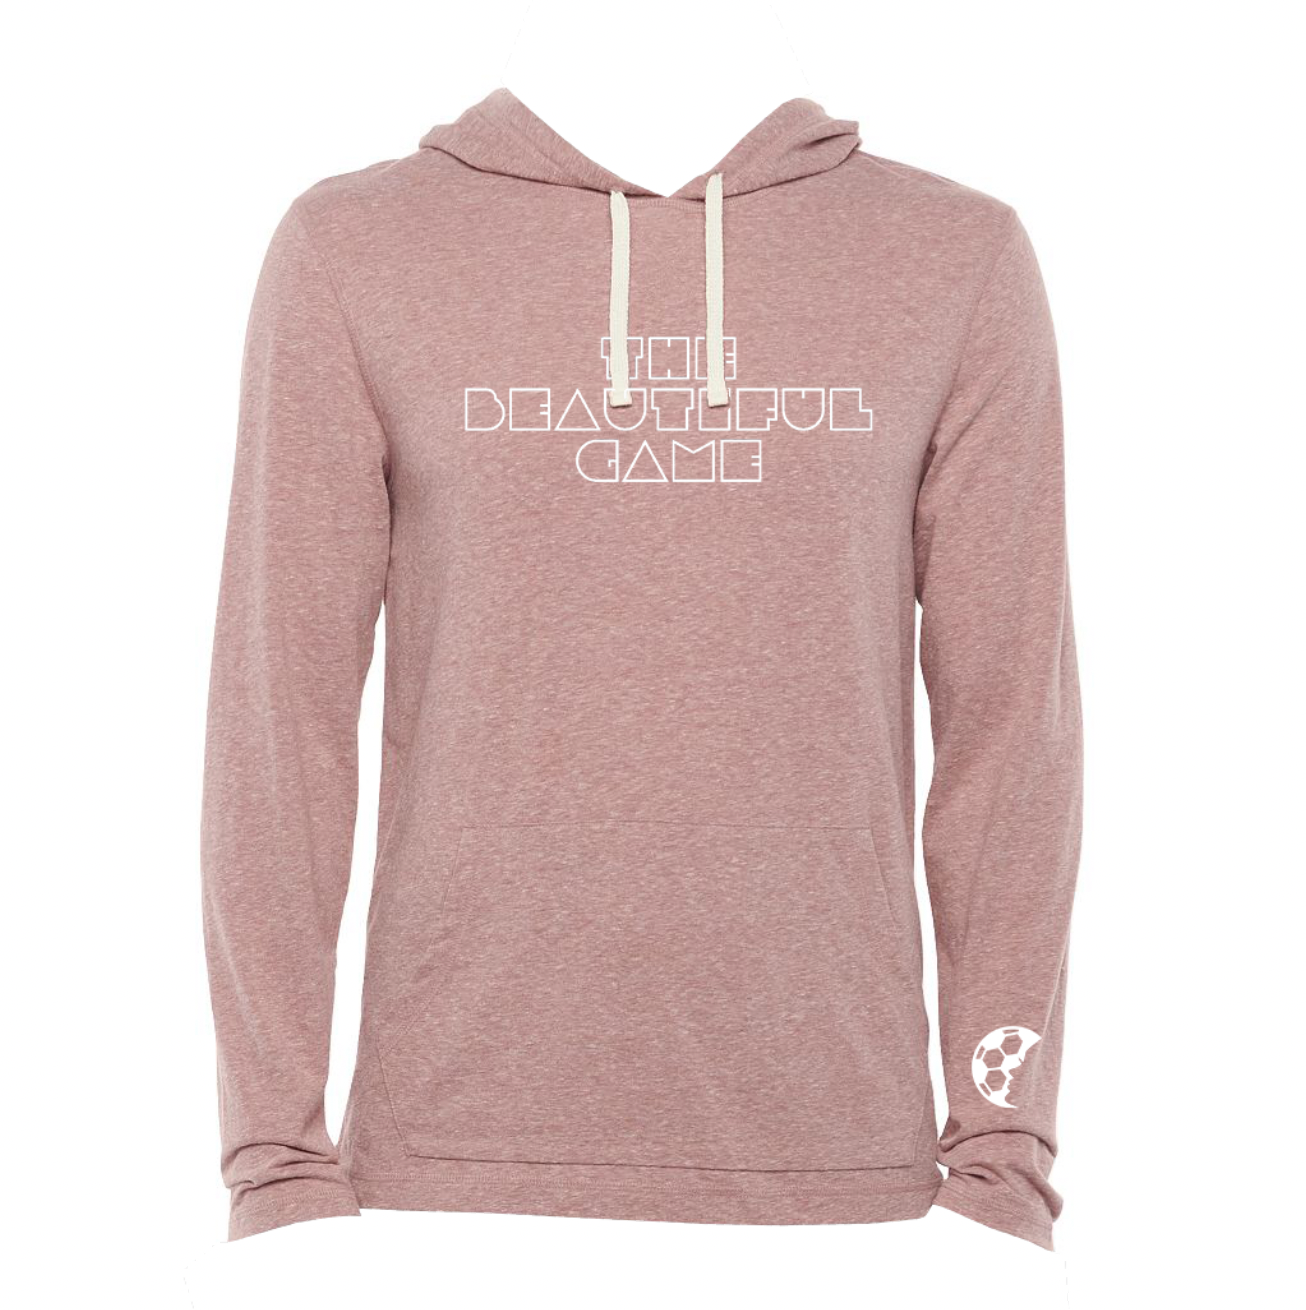 The Beautiful Game Light Weight Pullover